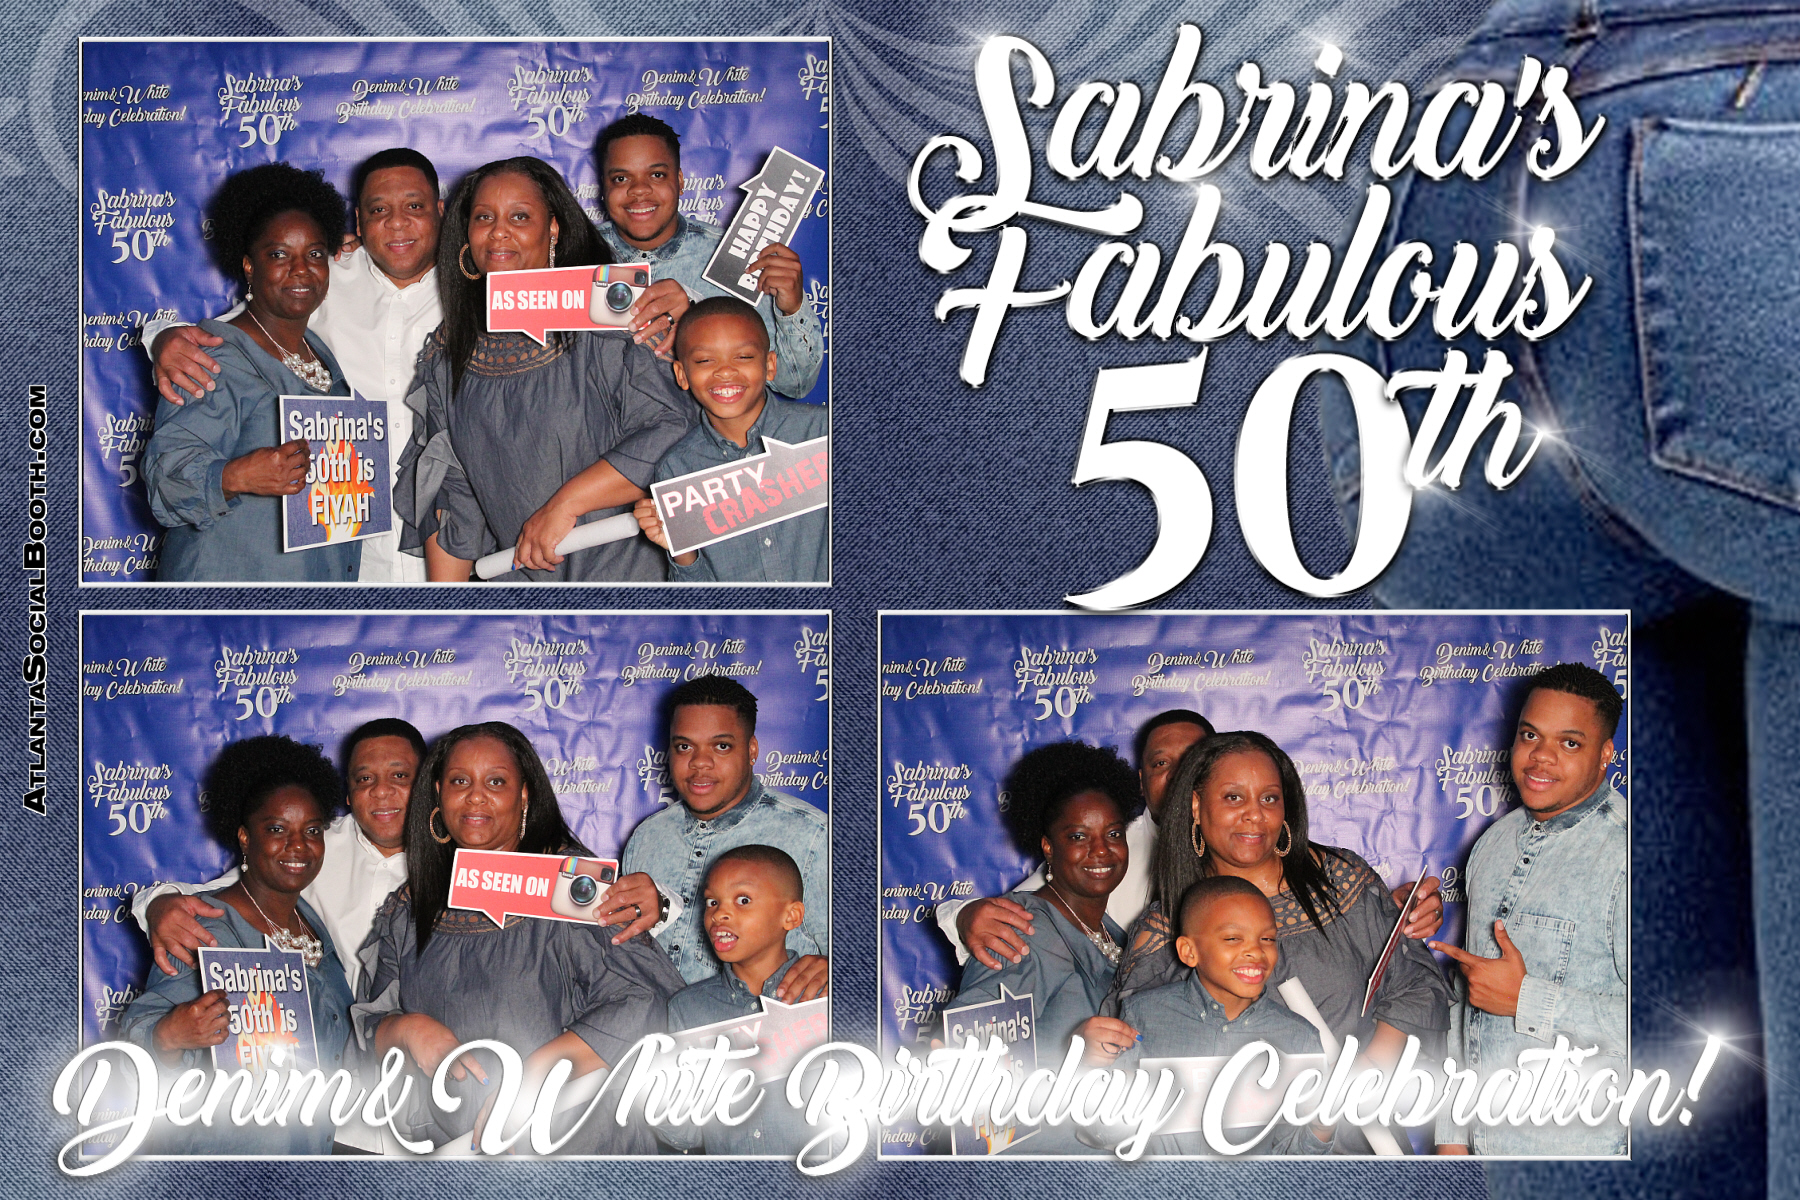 Sabrina Fabulous 50th